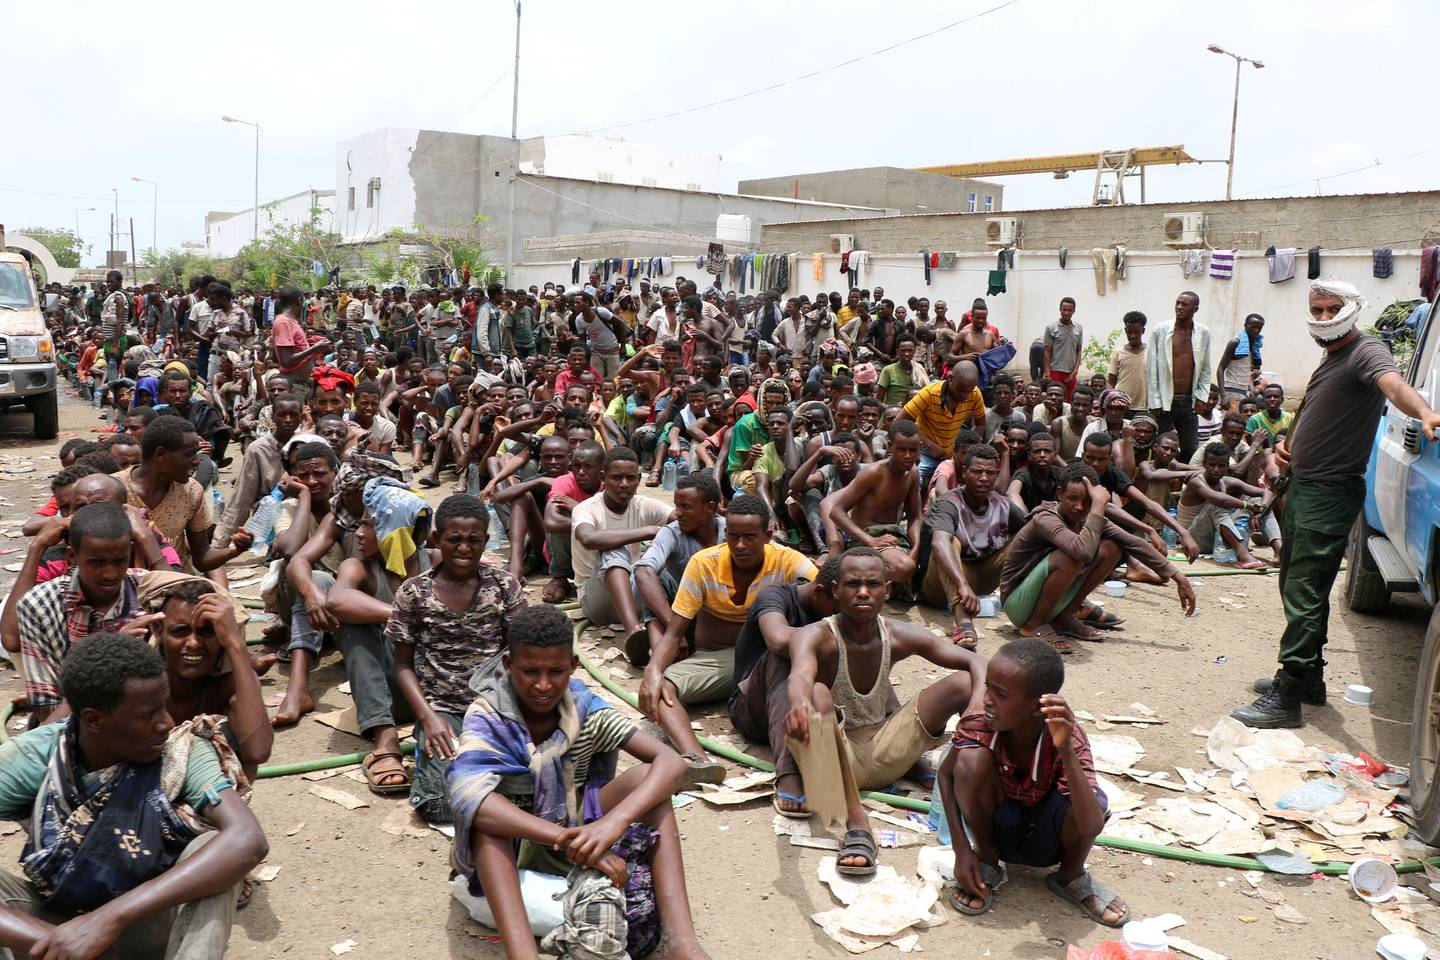 FILE PHOTO: Ethiopian migrants, stranded in war-torn Yemen, sit on the ground of a detention site pending repatriation to their home country, in Aden, Yemen April 24, 2019. REUTERS/Fawaz Salman/File Photo